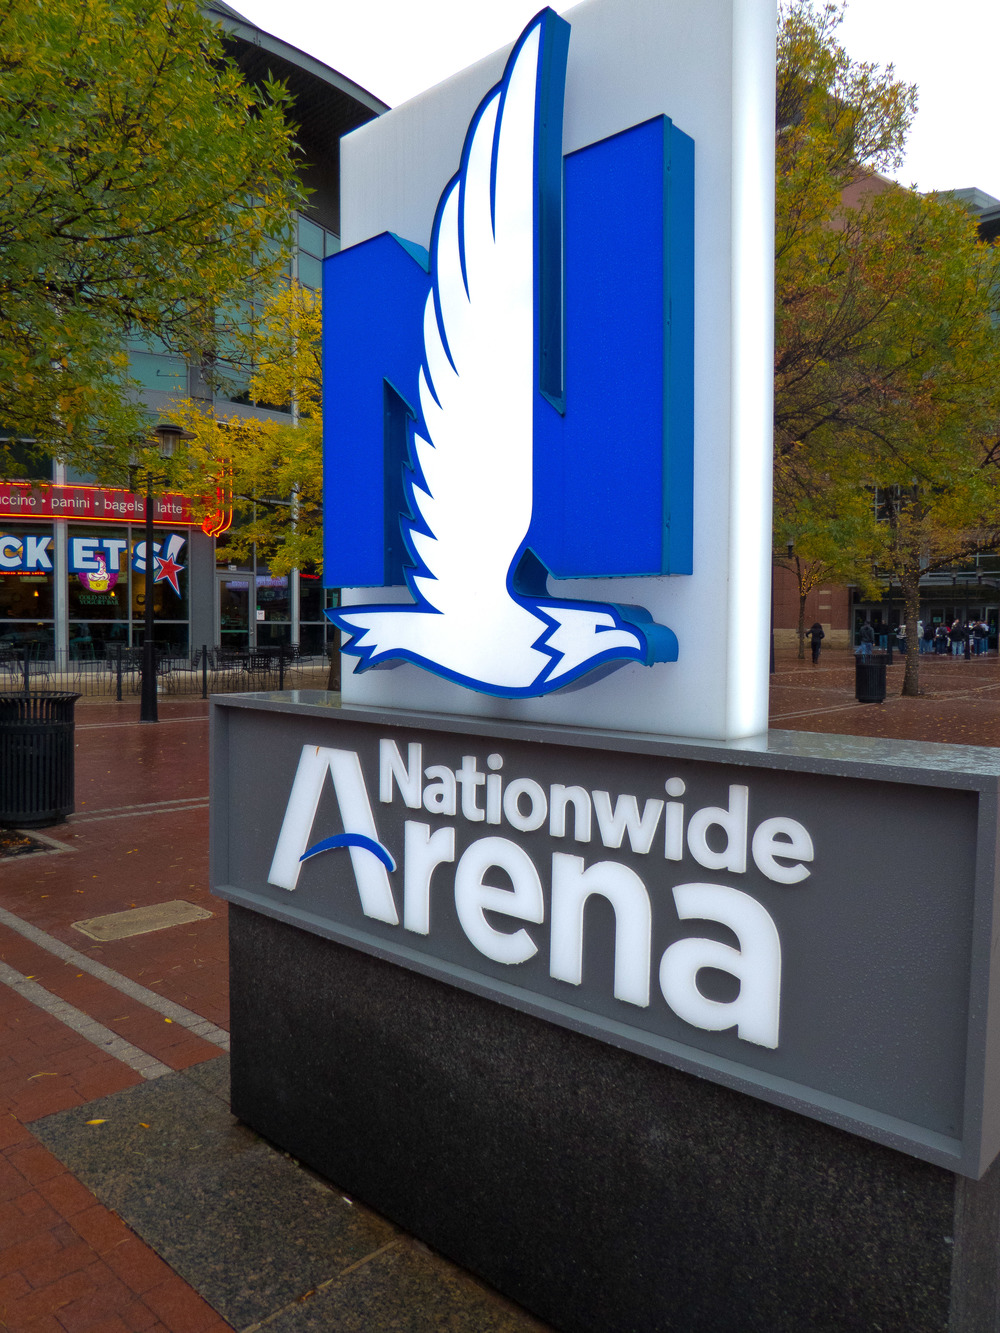 nationwide_arena.jpg